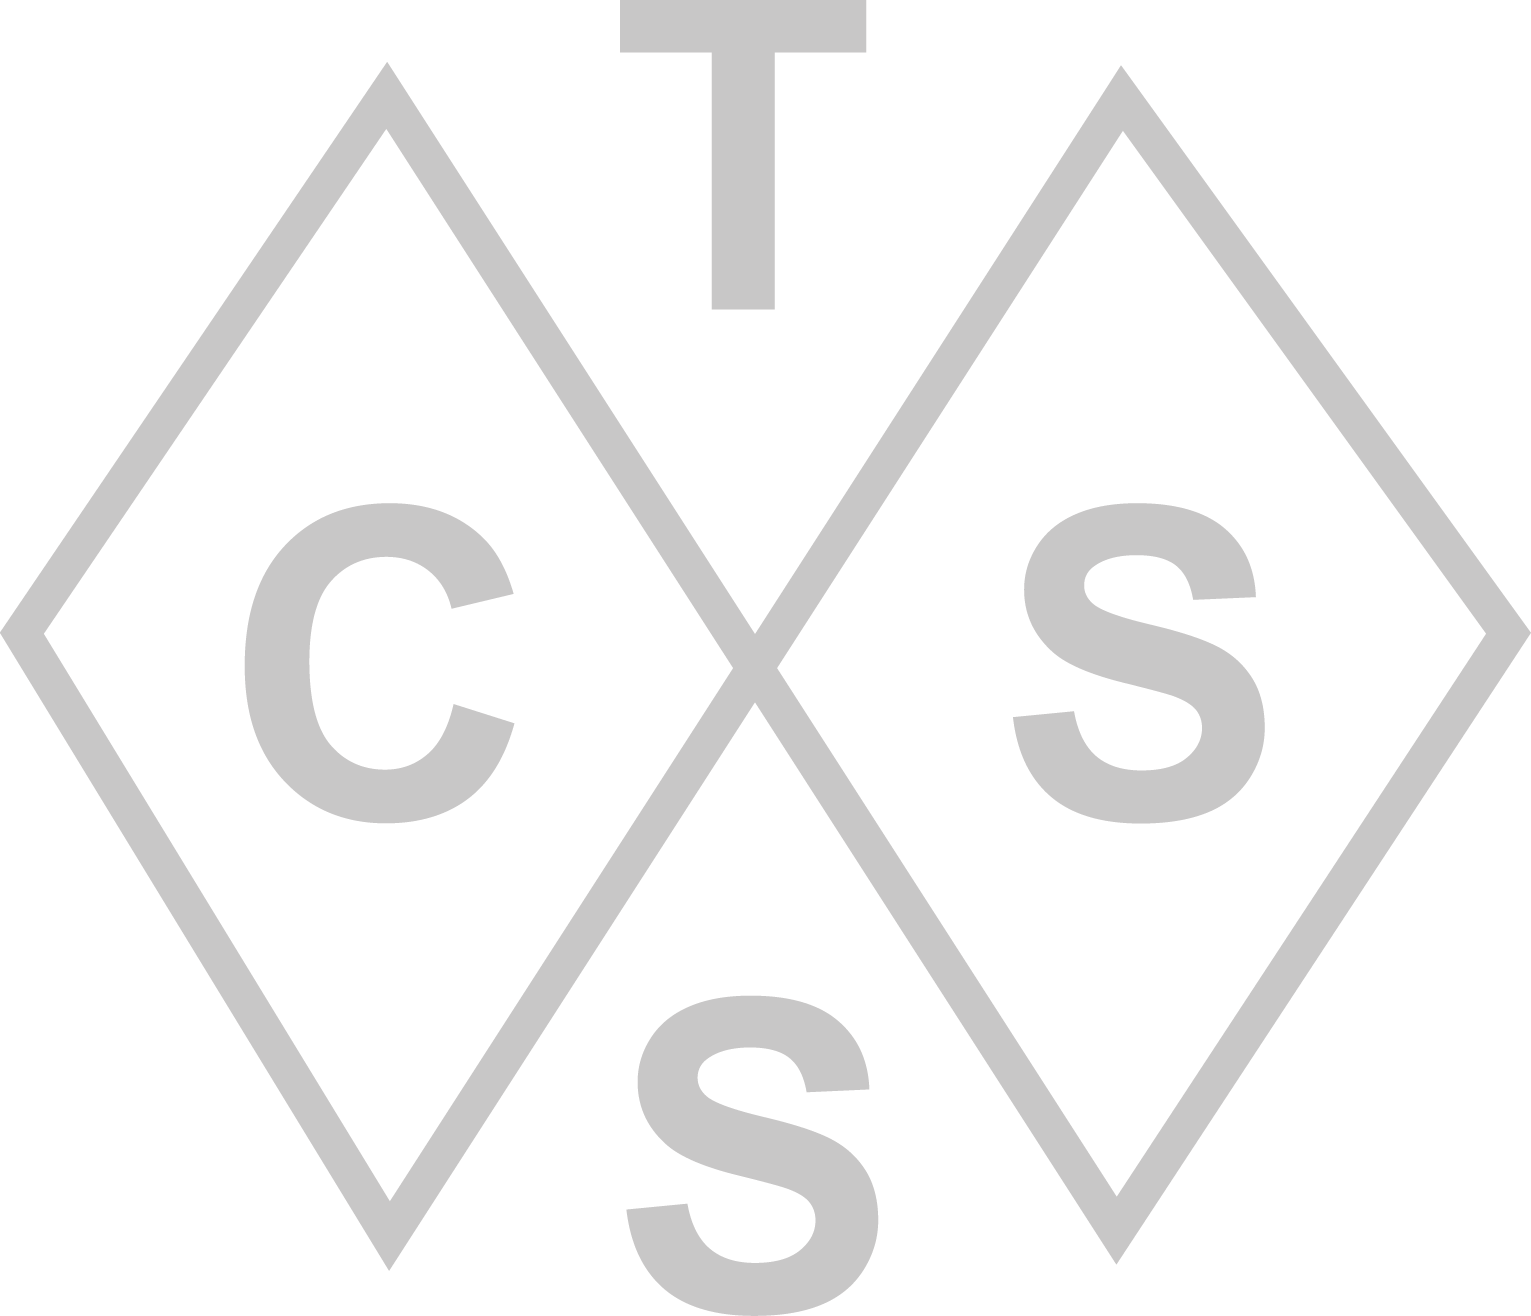 TCSS.png